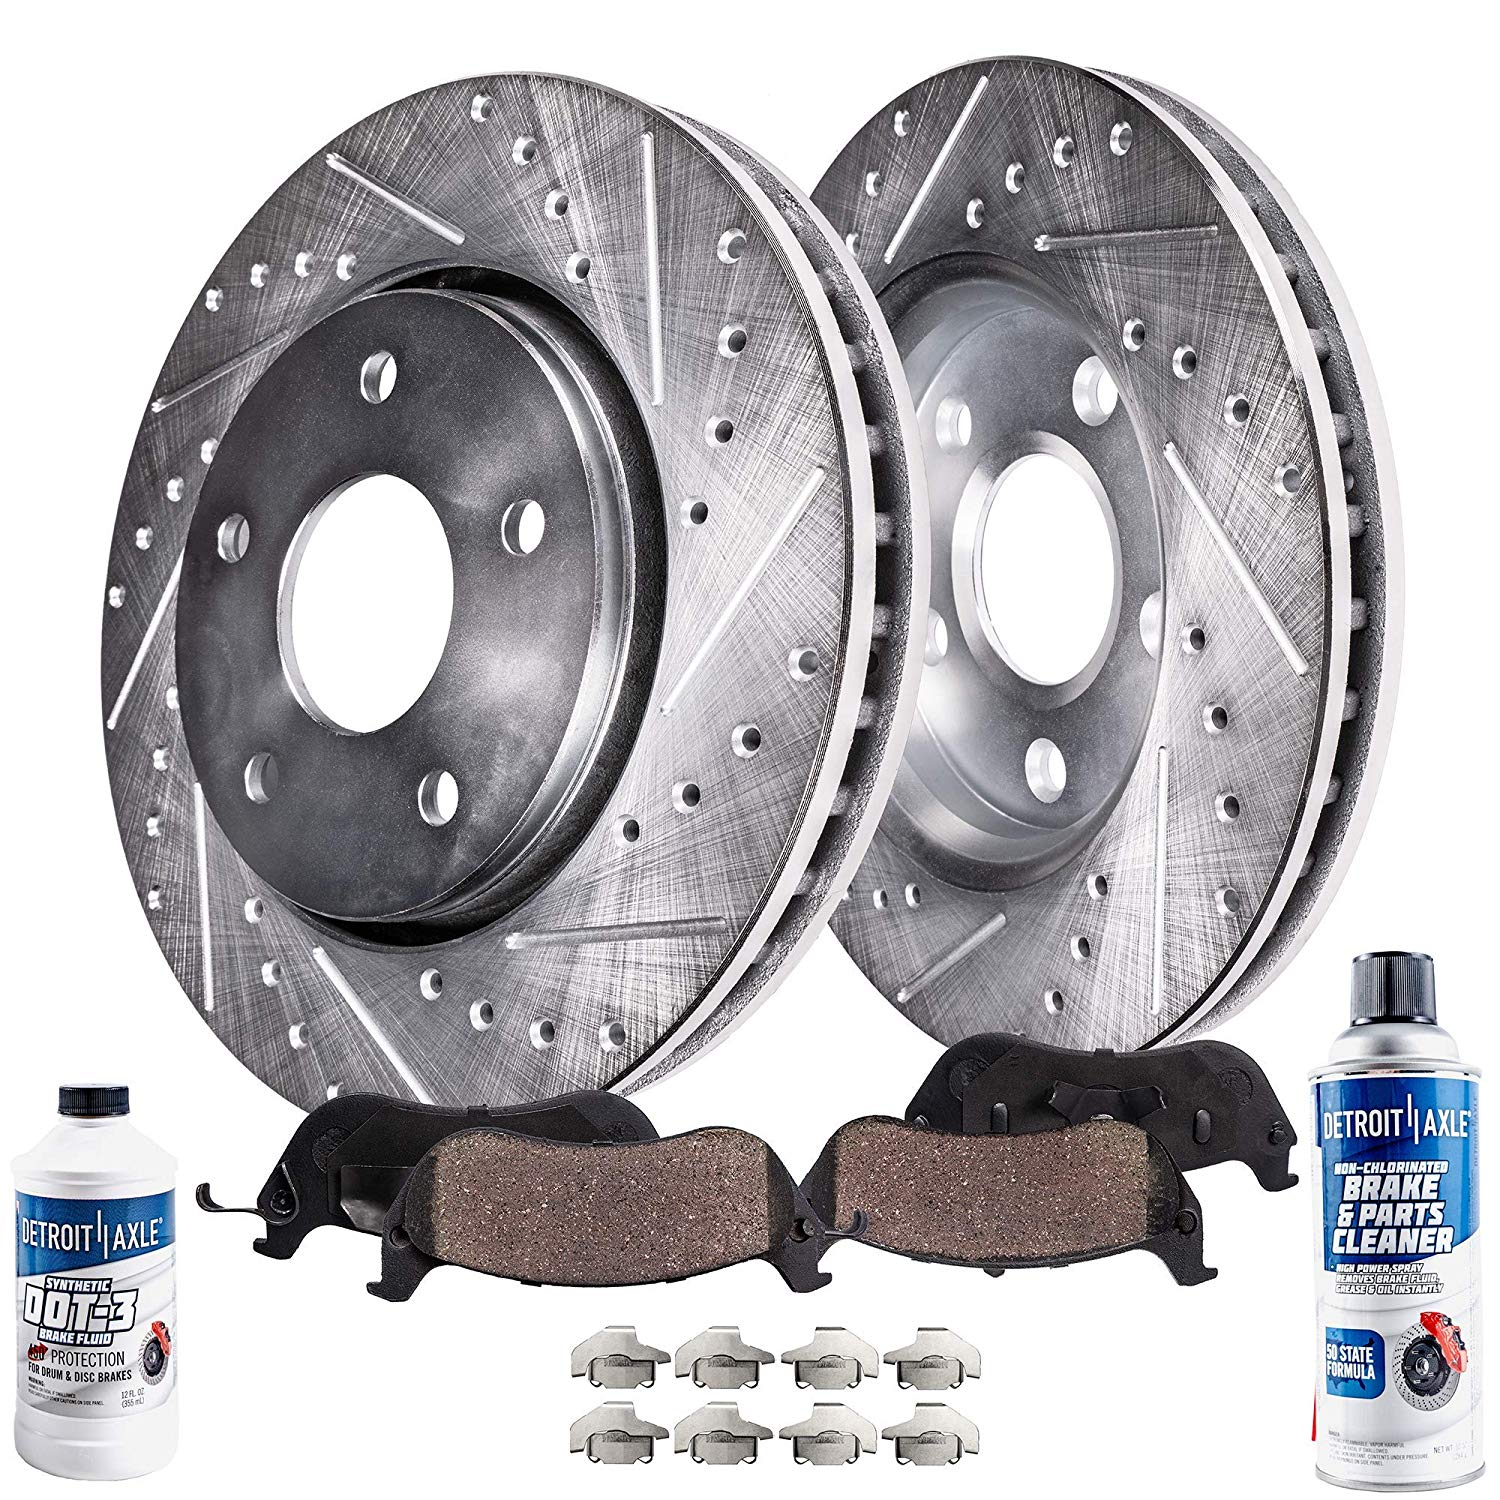 2008 Benz ML350 w//Rear Solid Rotors OE Replacement Rotors Ceramic Pads F+R